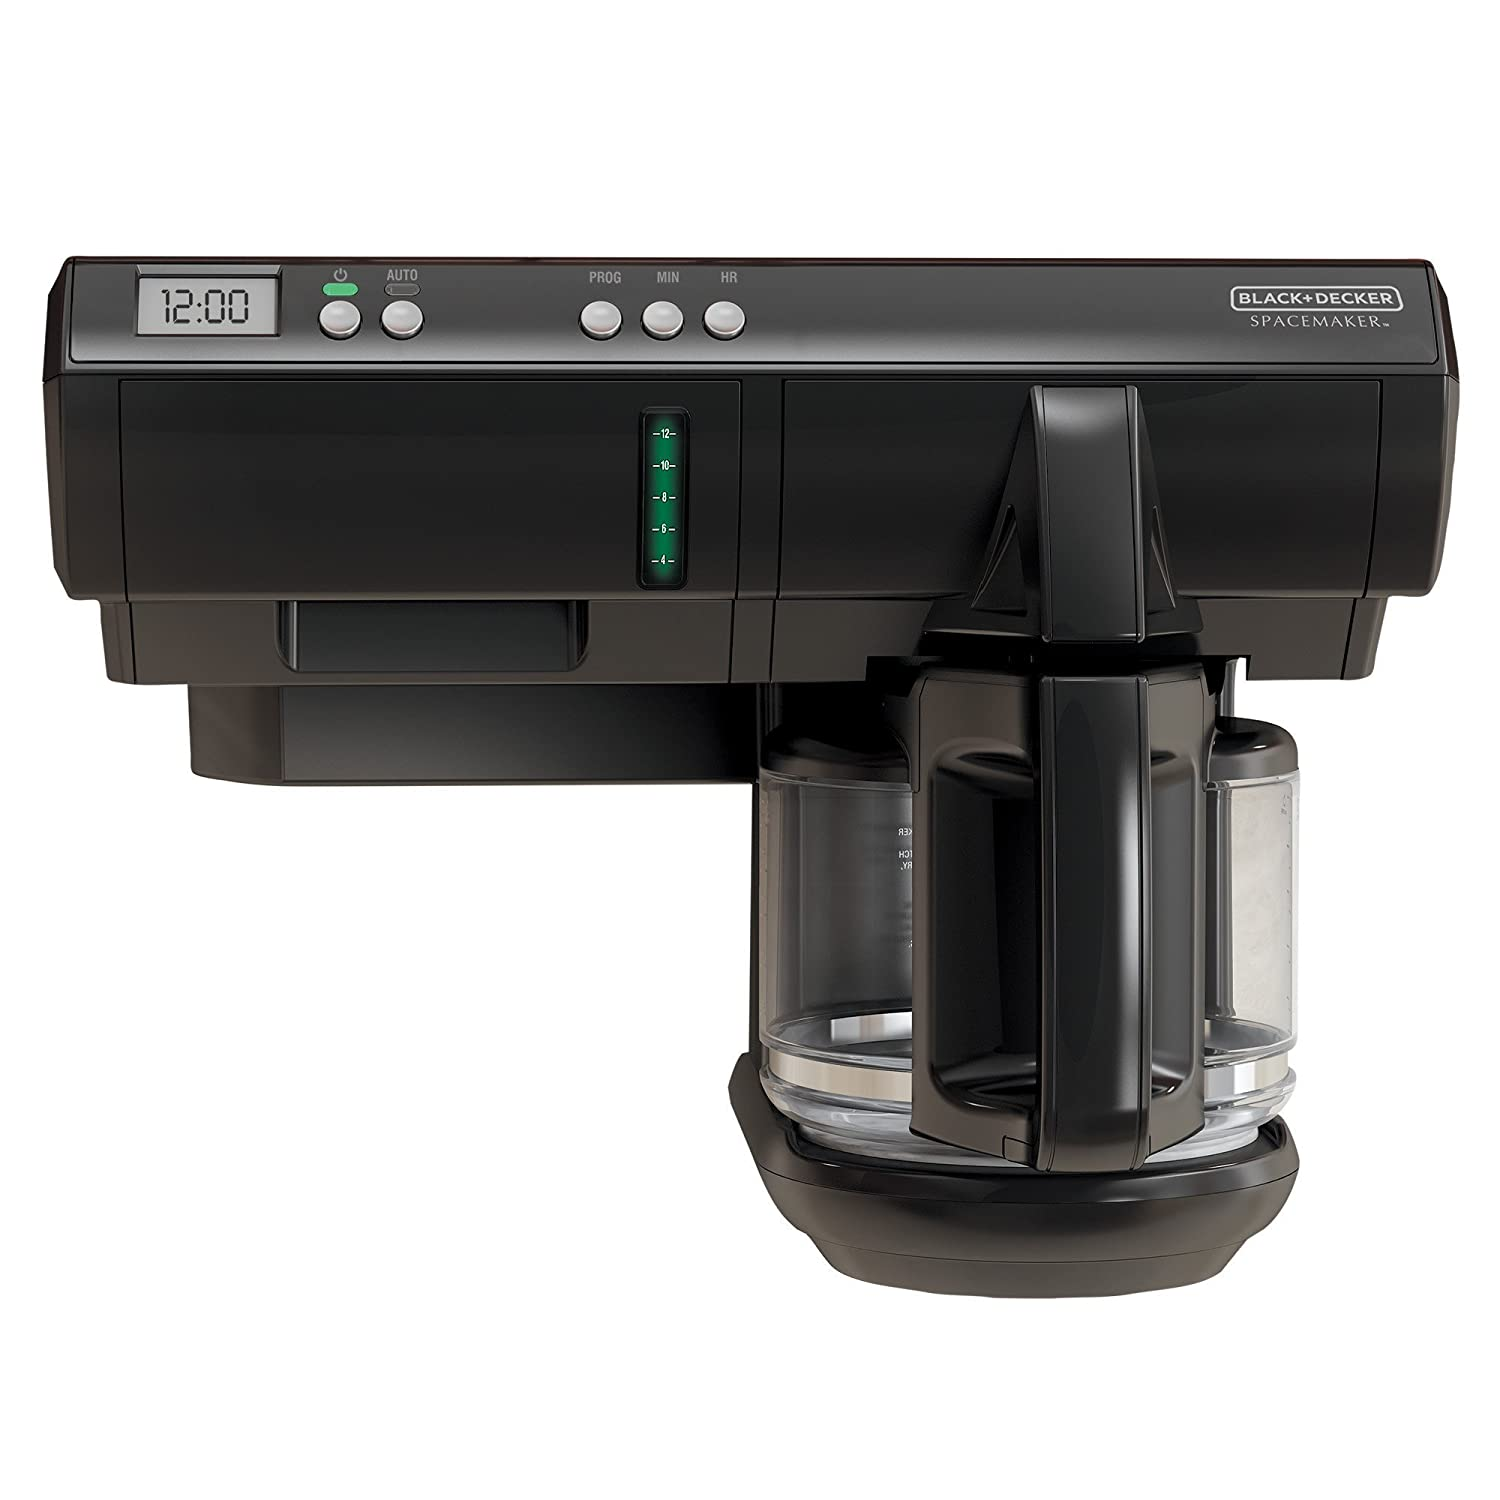 Black and decker coffee maker 12 cup programmable - Amazon Com Black Decker Scm1000bd Spacemaker Under The Cabinet 12 Cup Programmable Coffeemaker Black Kitchen Dining